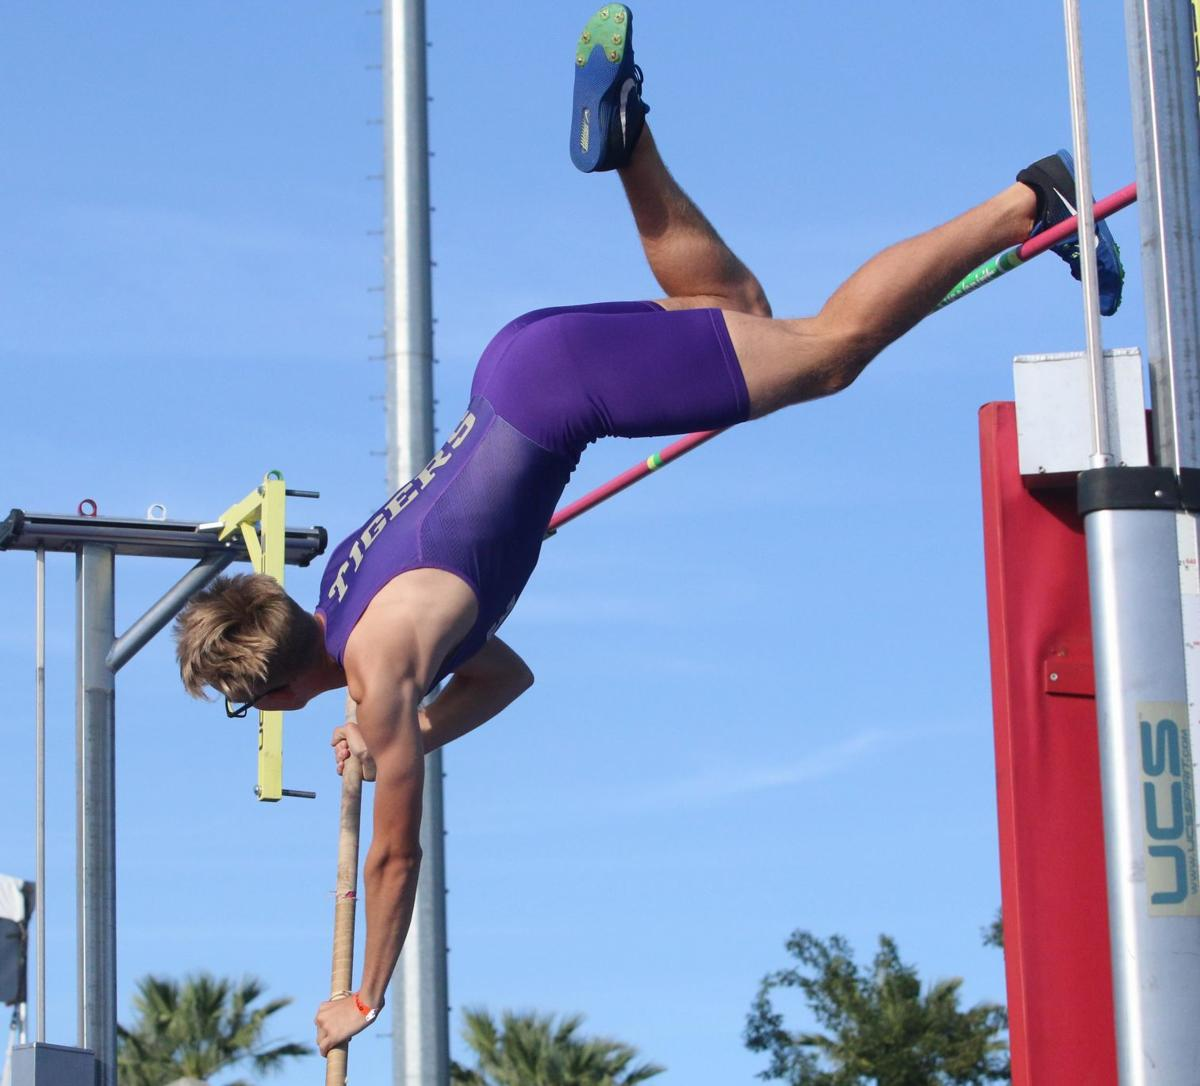 White competes at state as only Kings County athlete